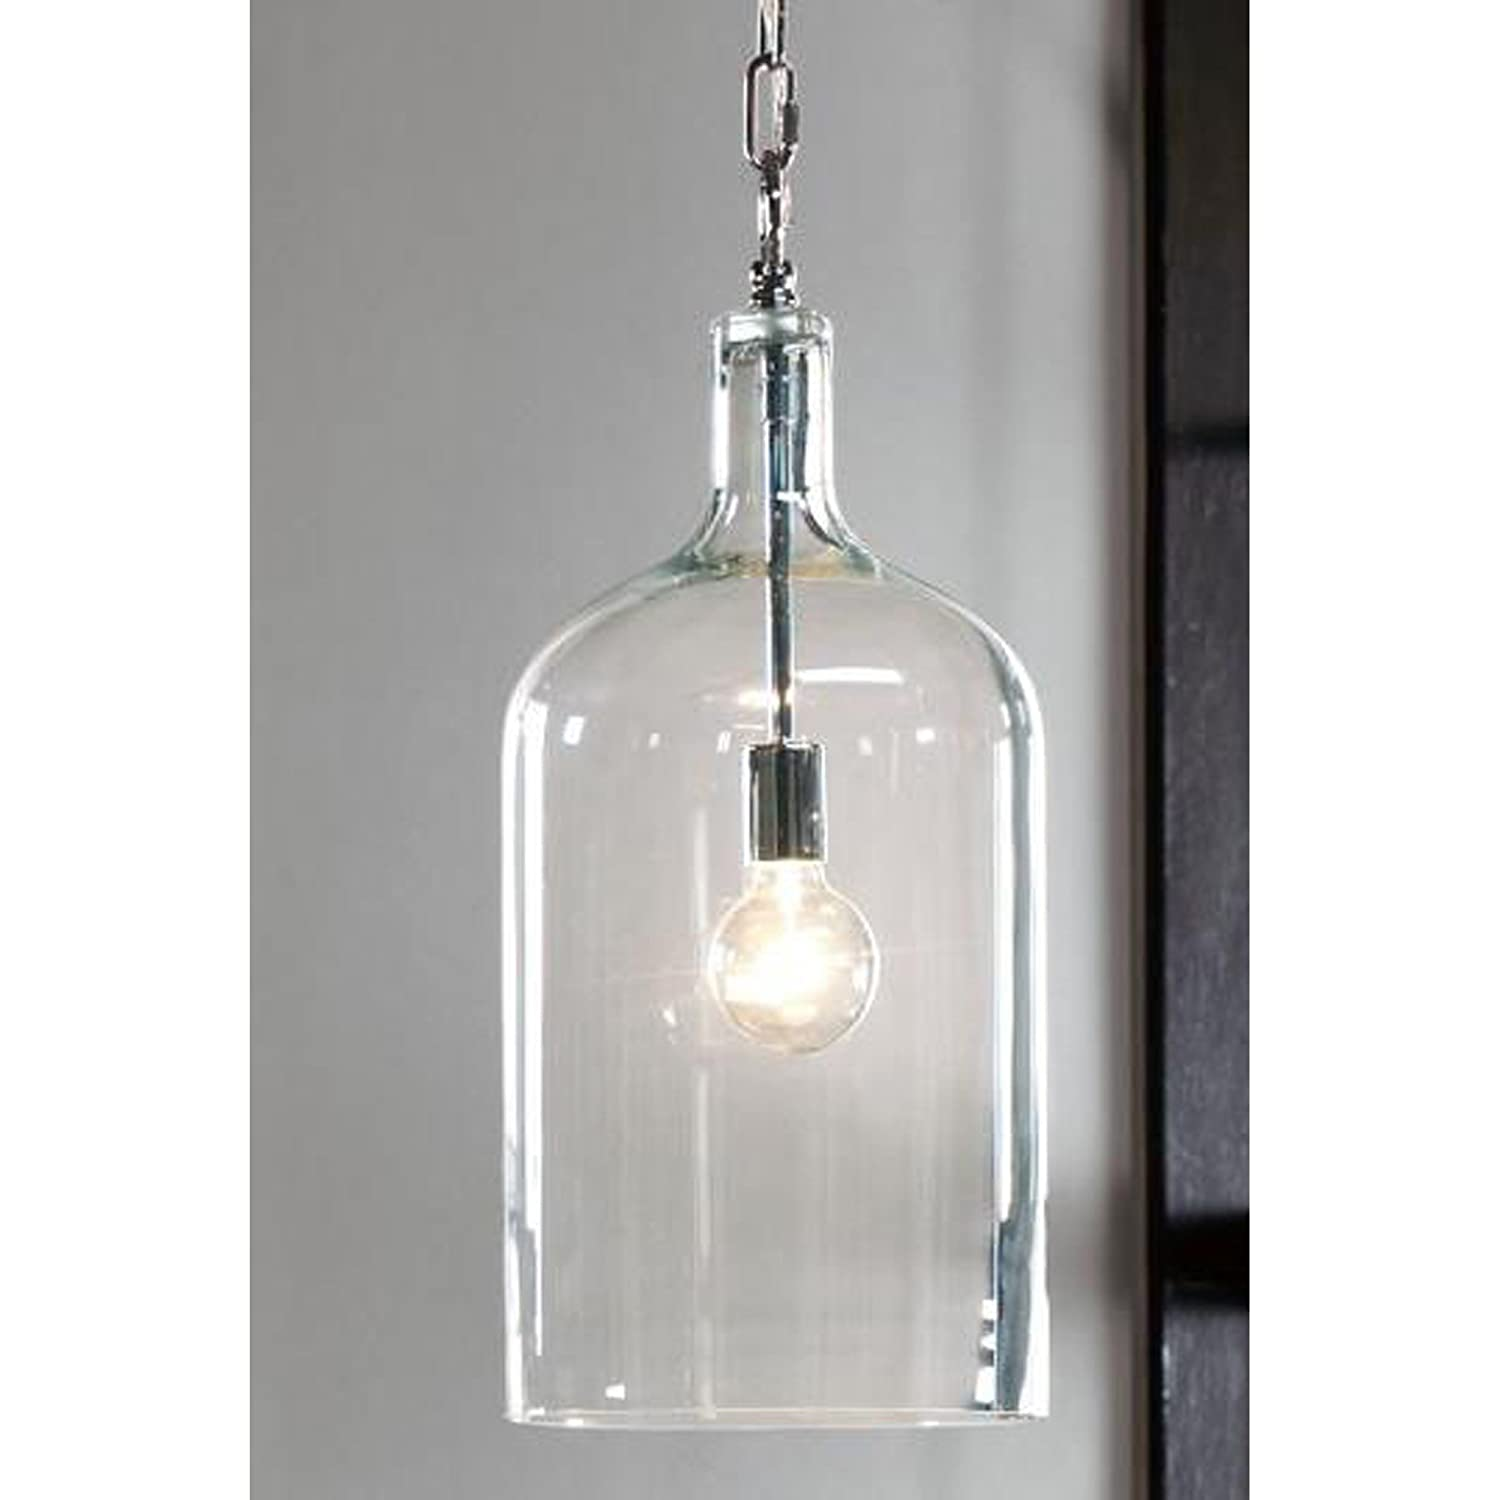 Kenroy home 91830clr capri 1 light pendant clear finish ceiling kenroy home 91830clr capri 1 light pendant clear finish ceiling pendant fixtures amazon aloadofball